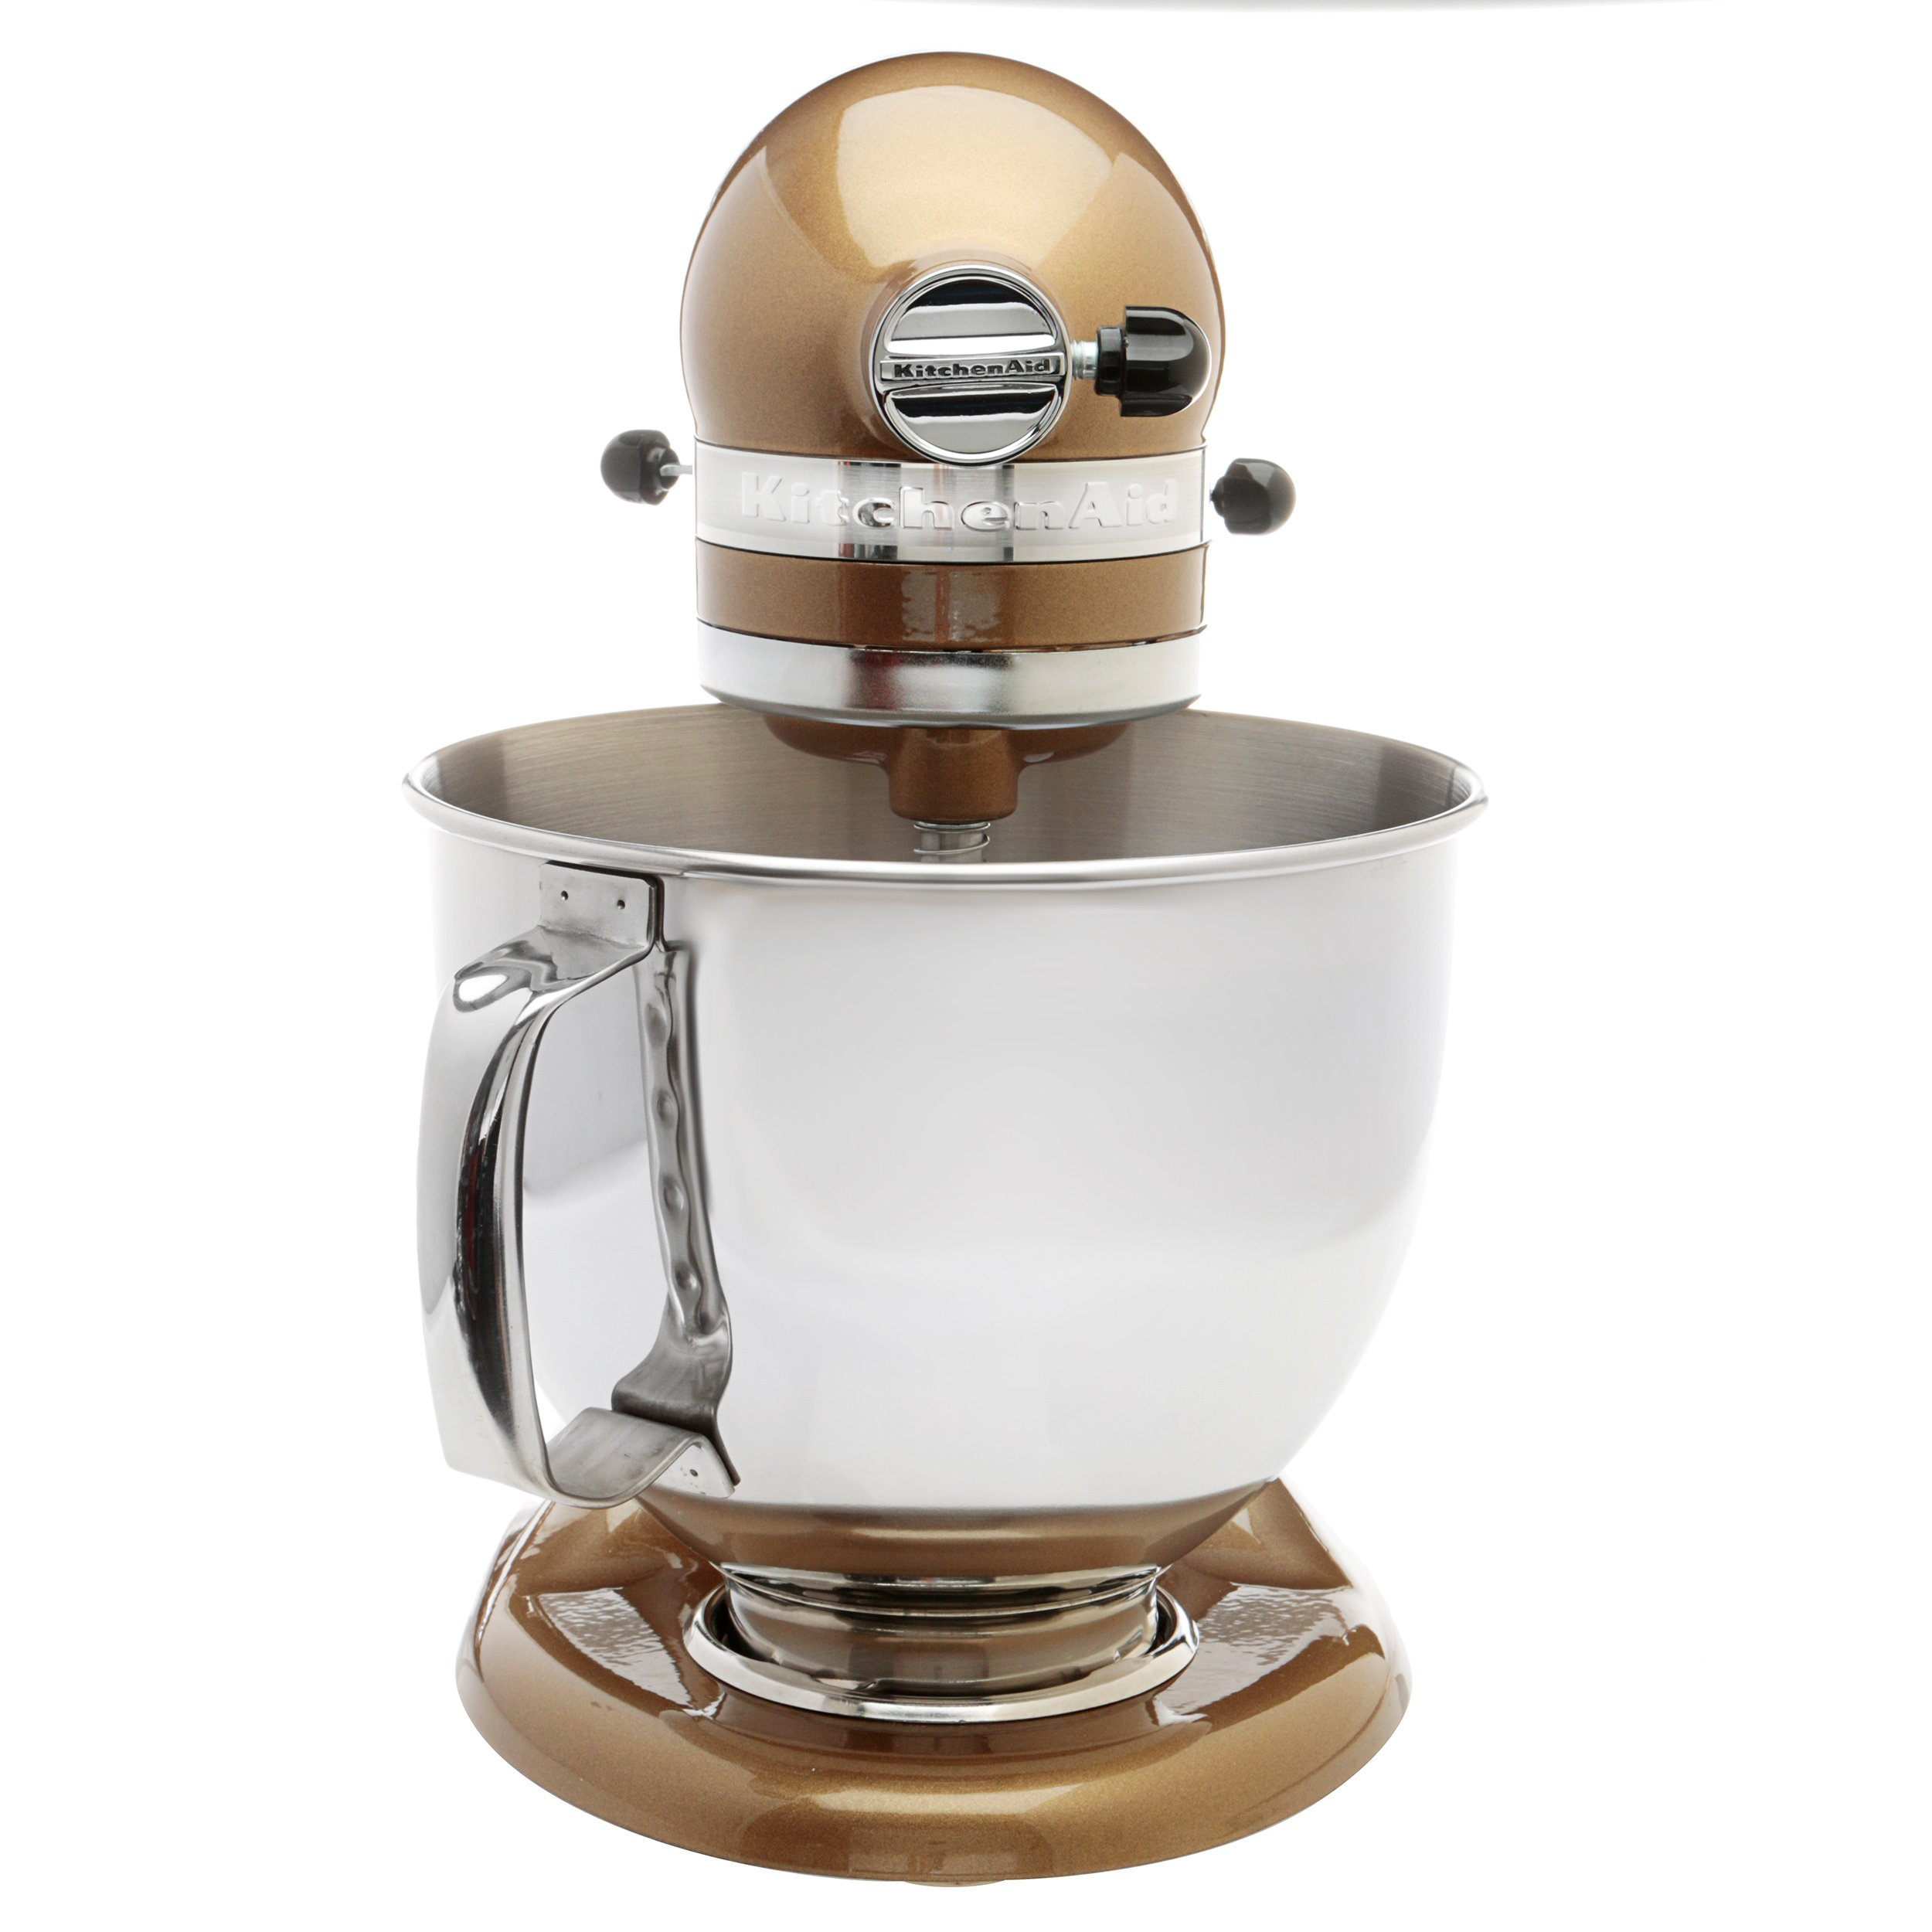 KitchenAid-Refurbished-Artisan-Series-5-Quart-Tilt-Head-Stand-Mixer-RRK150 thumbnail 85